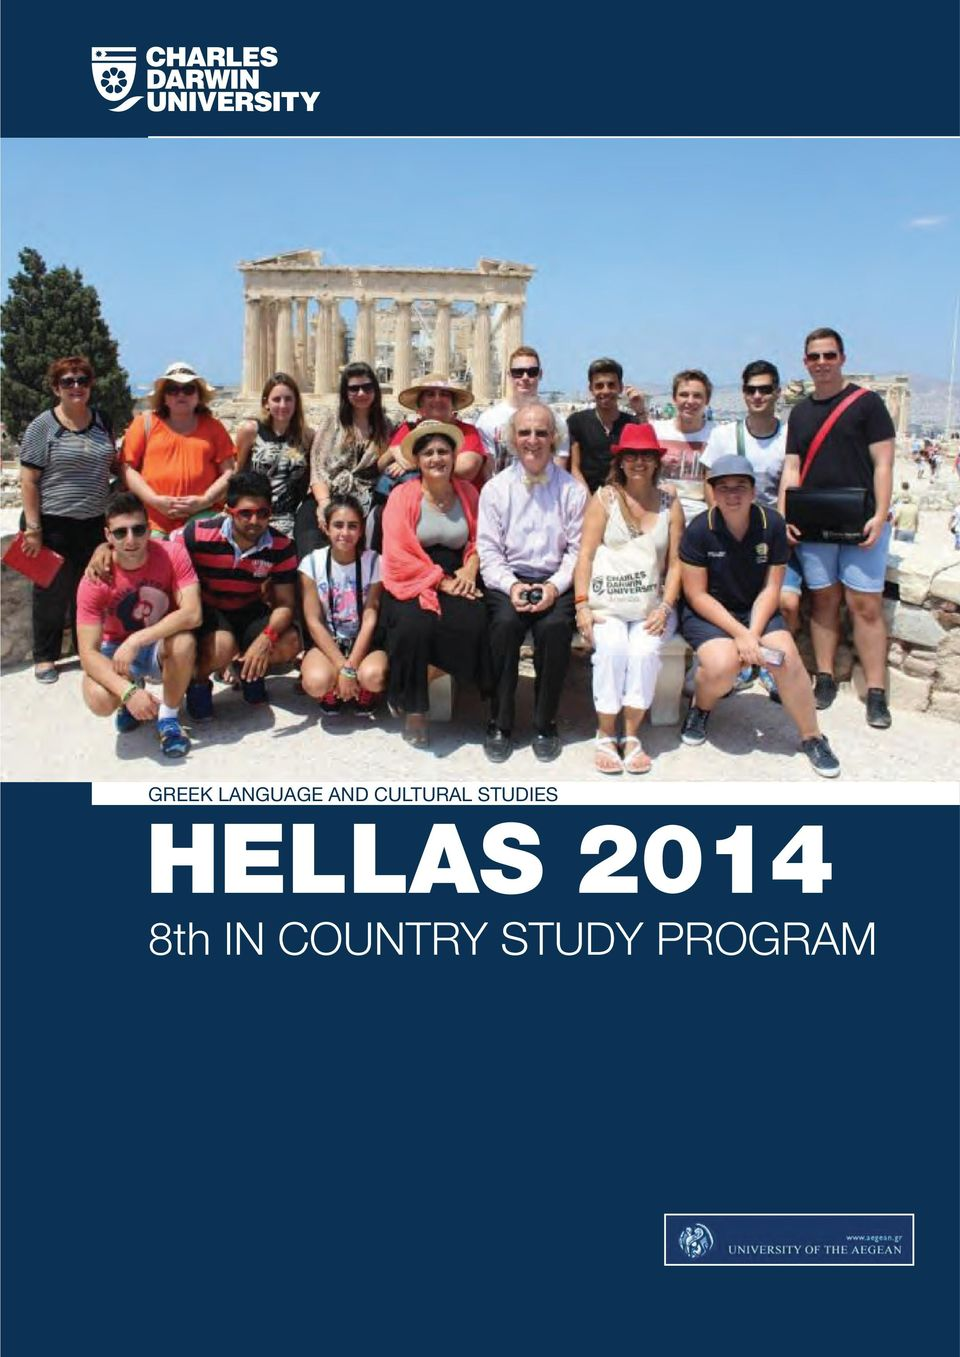 HELLAS 2014 8th IN